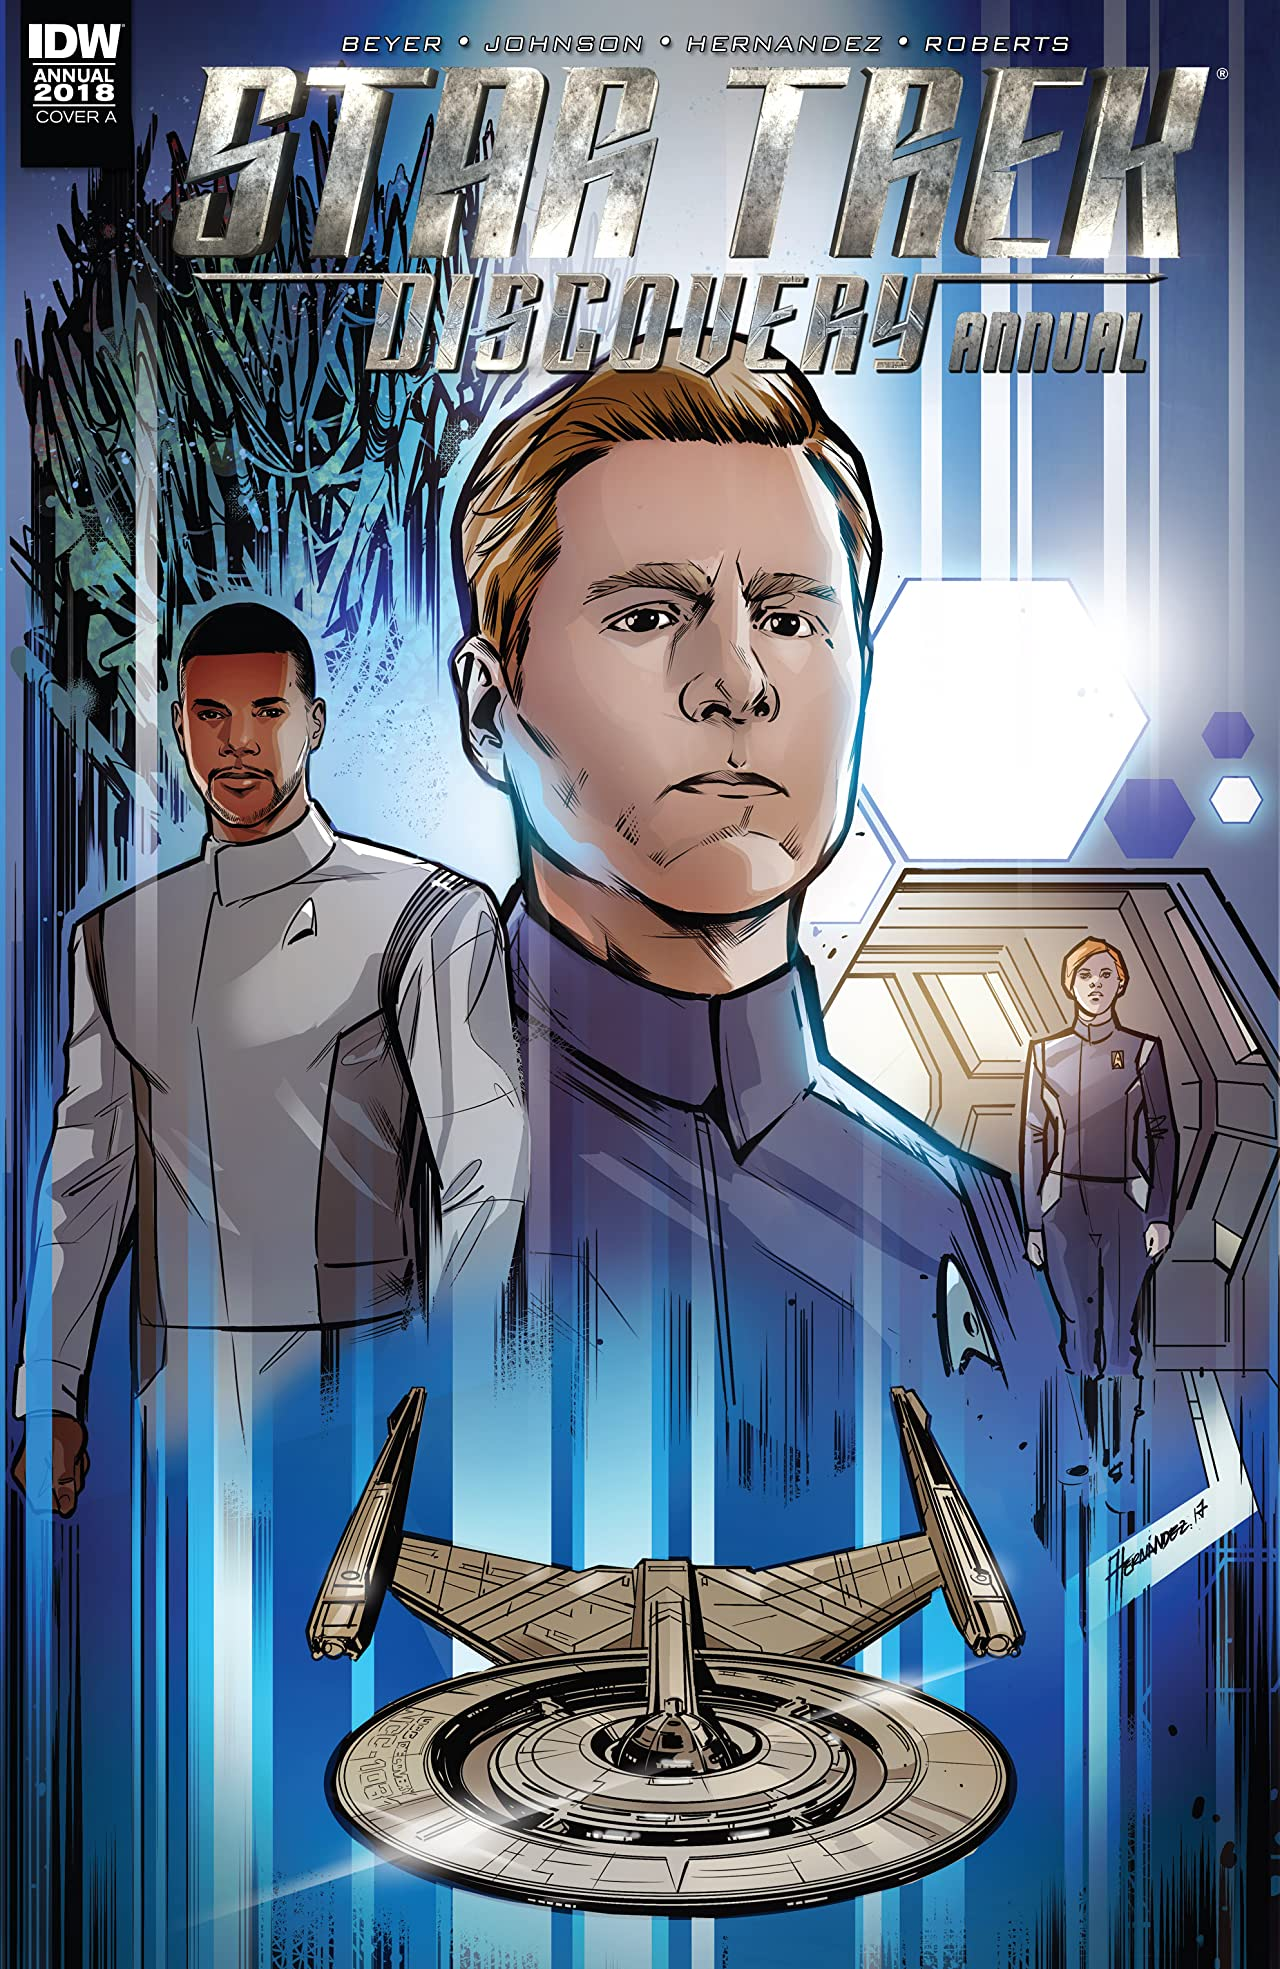 Star Trek: Discovery Annual 2018